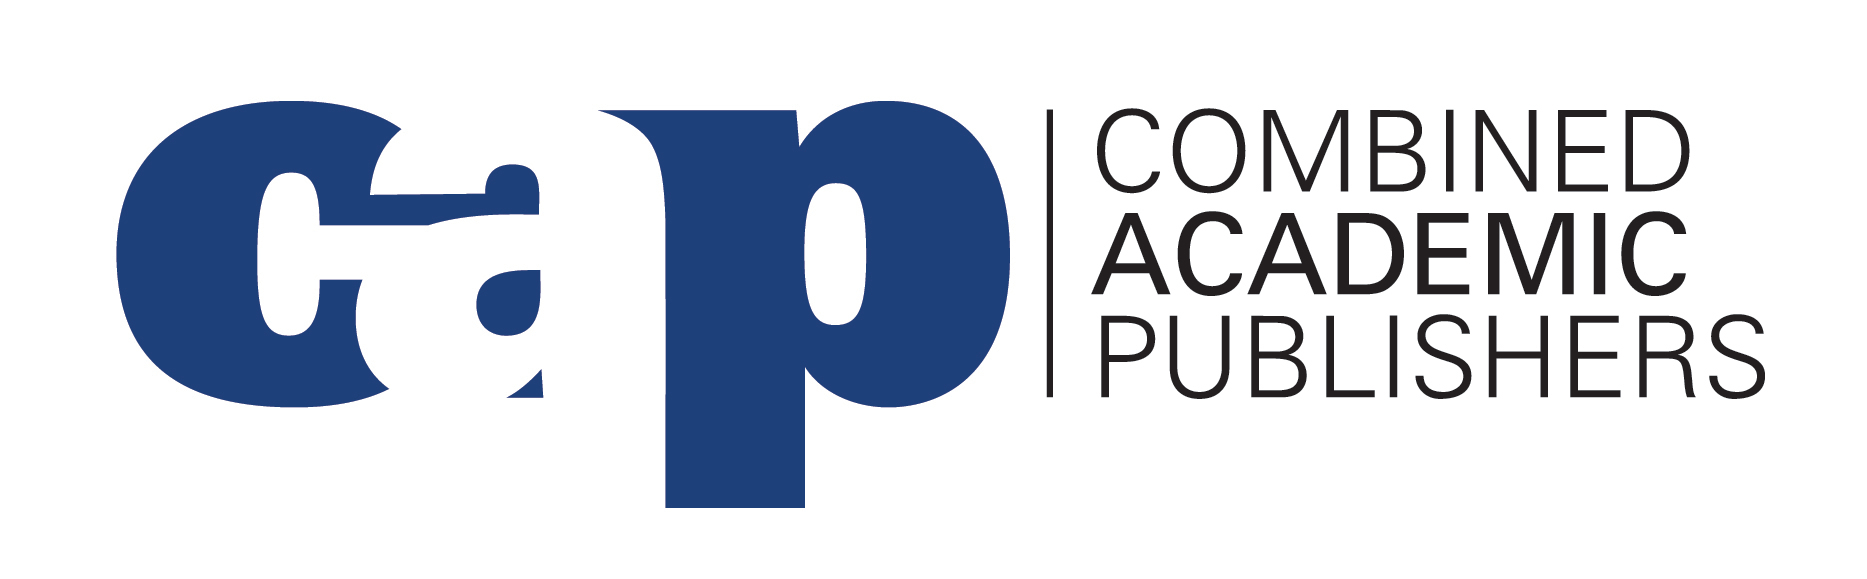 Combined Academic Publishers